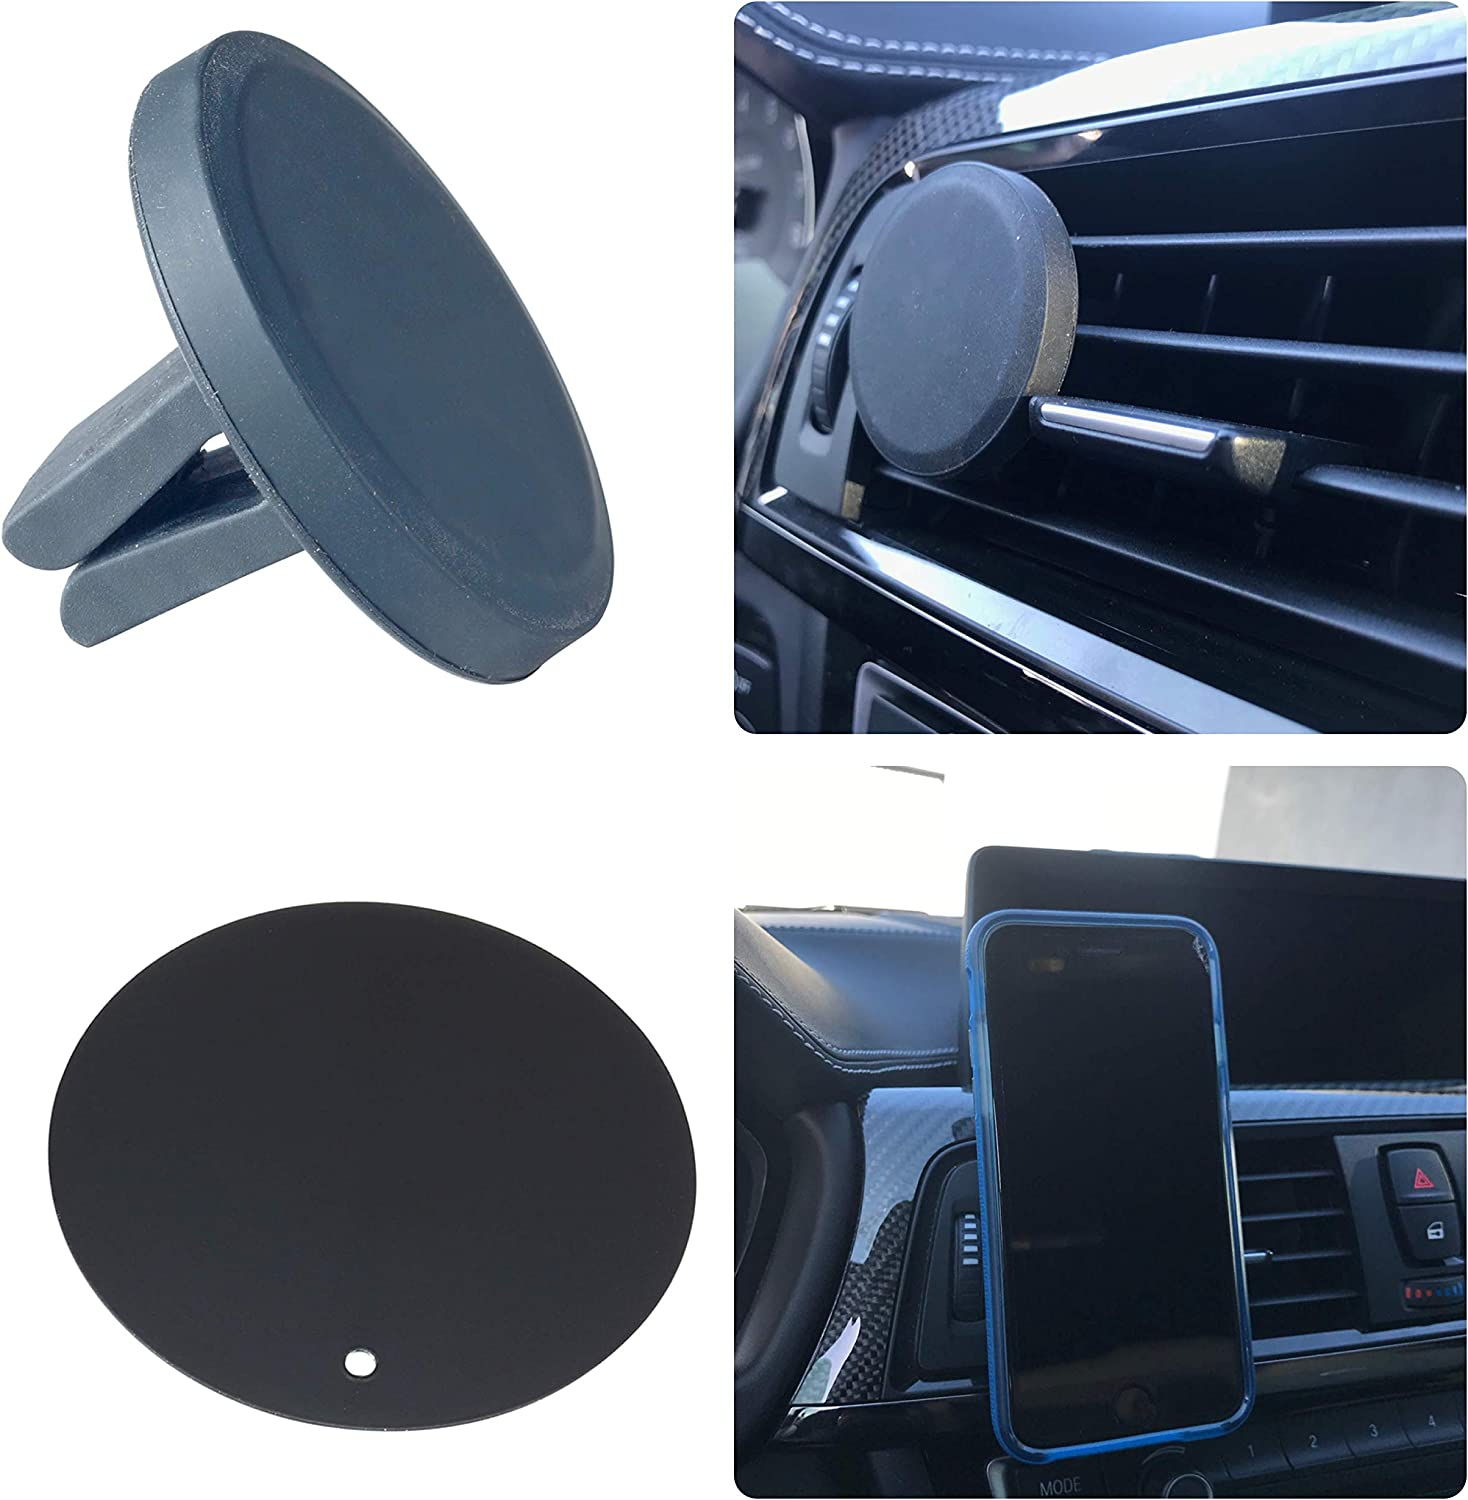 Universal Car Air Vent Magnetic Phone Mount Holder